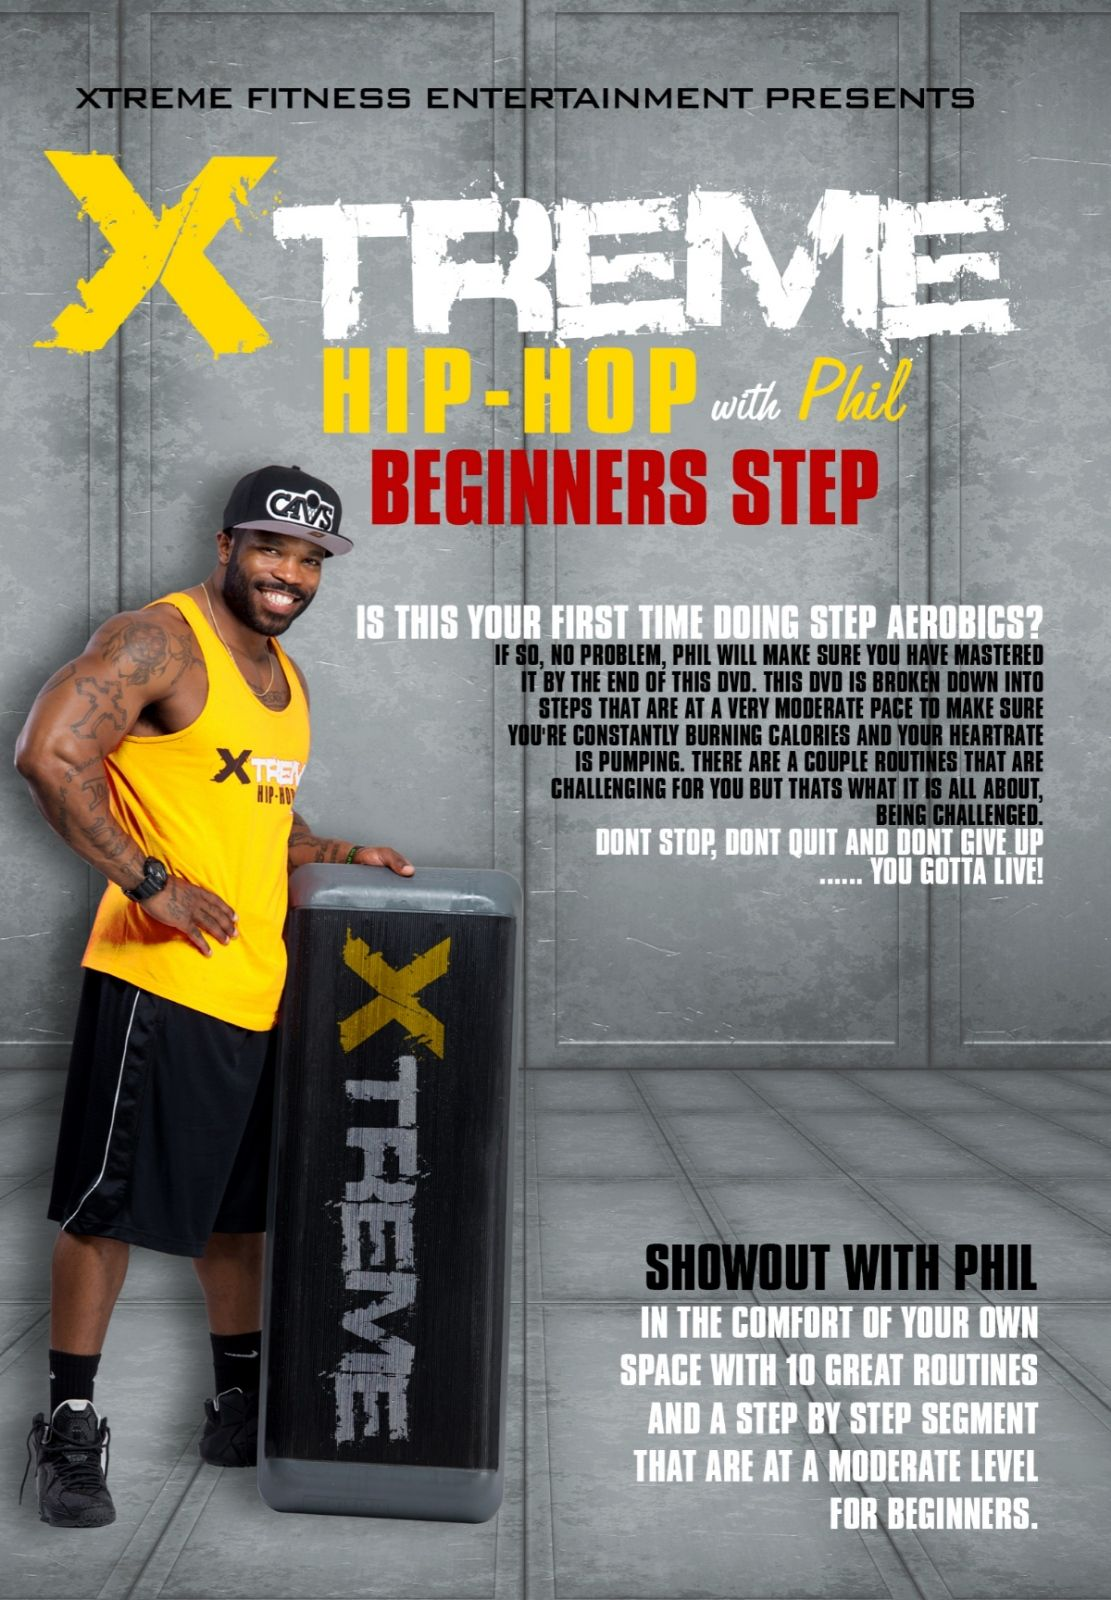 xtreme fitness with phil songs